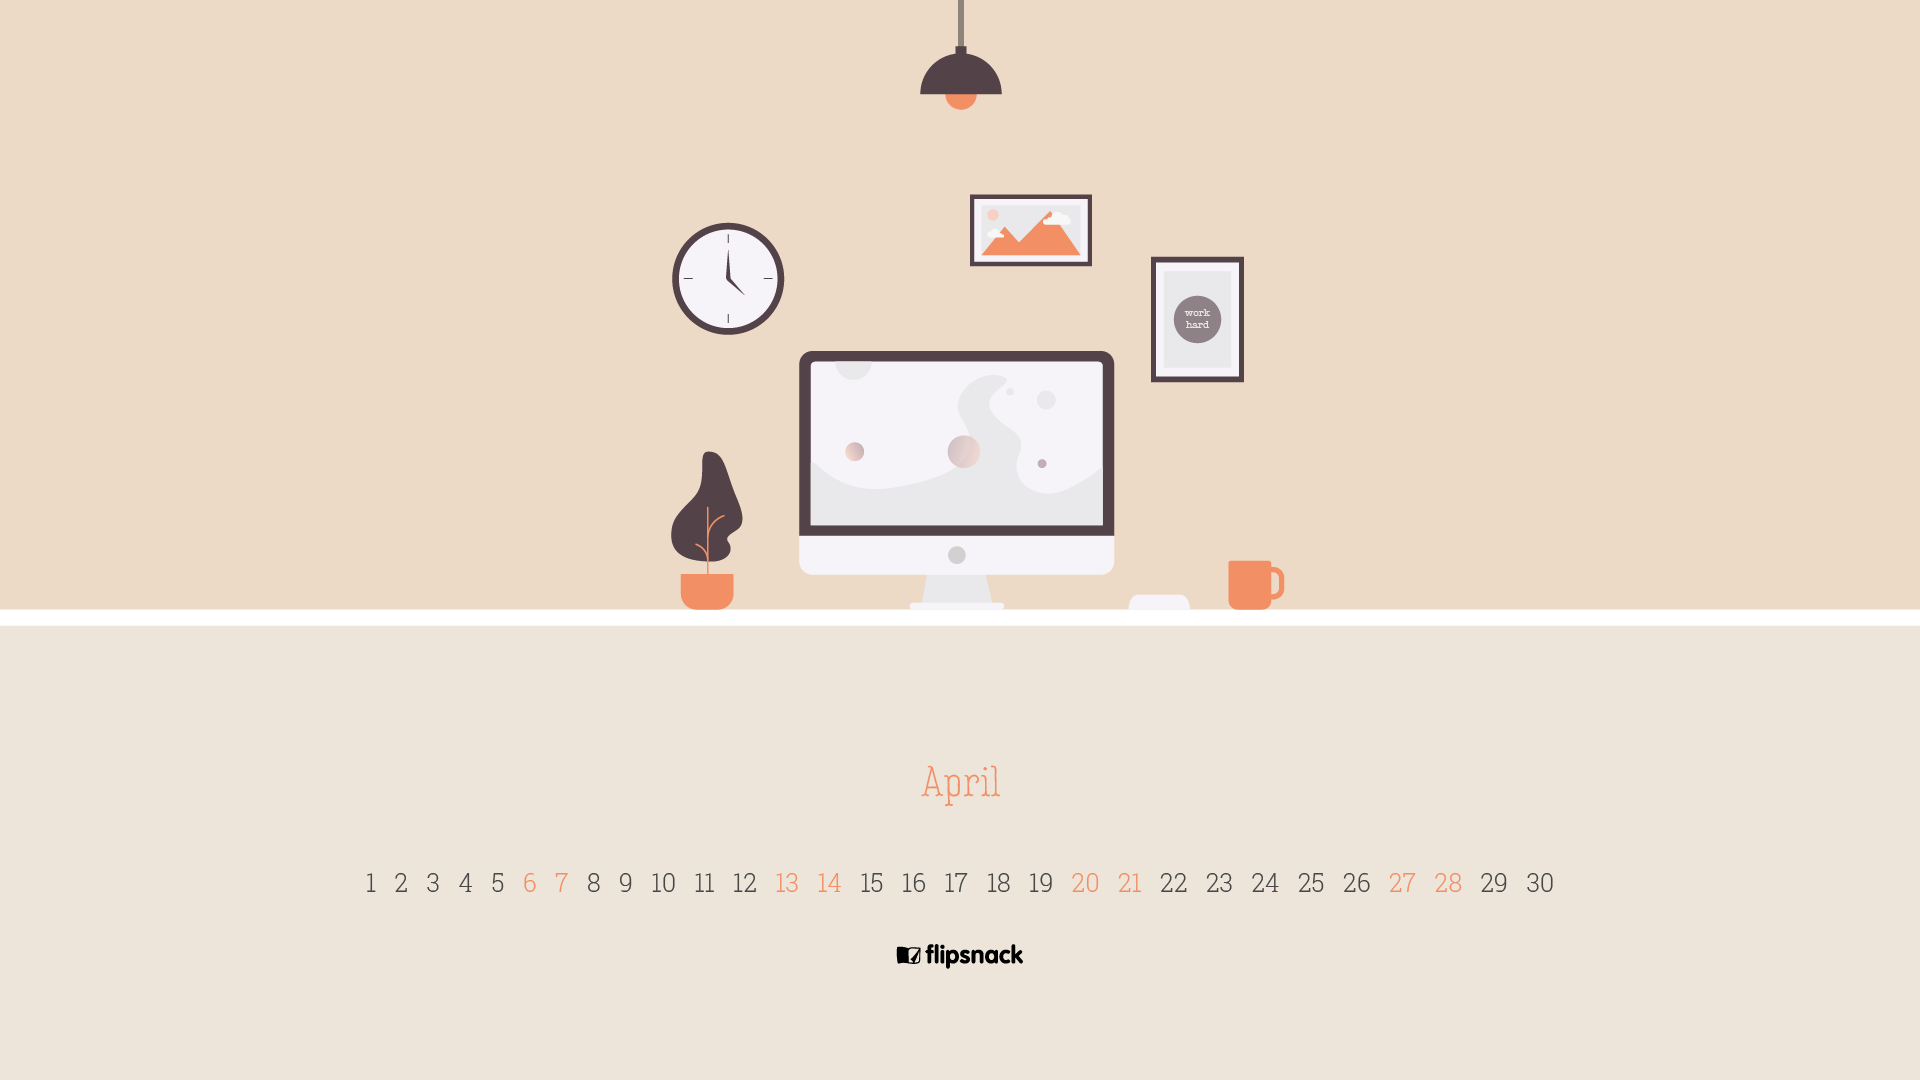 Free April 2019 Wallpaper Calendars Flipsnack Blog